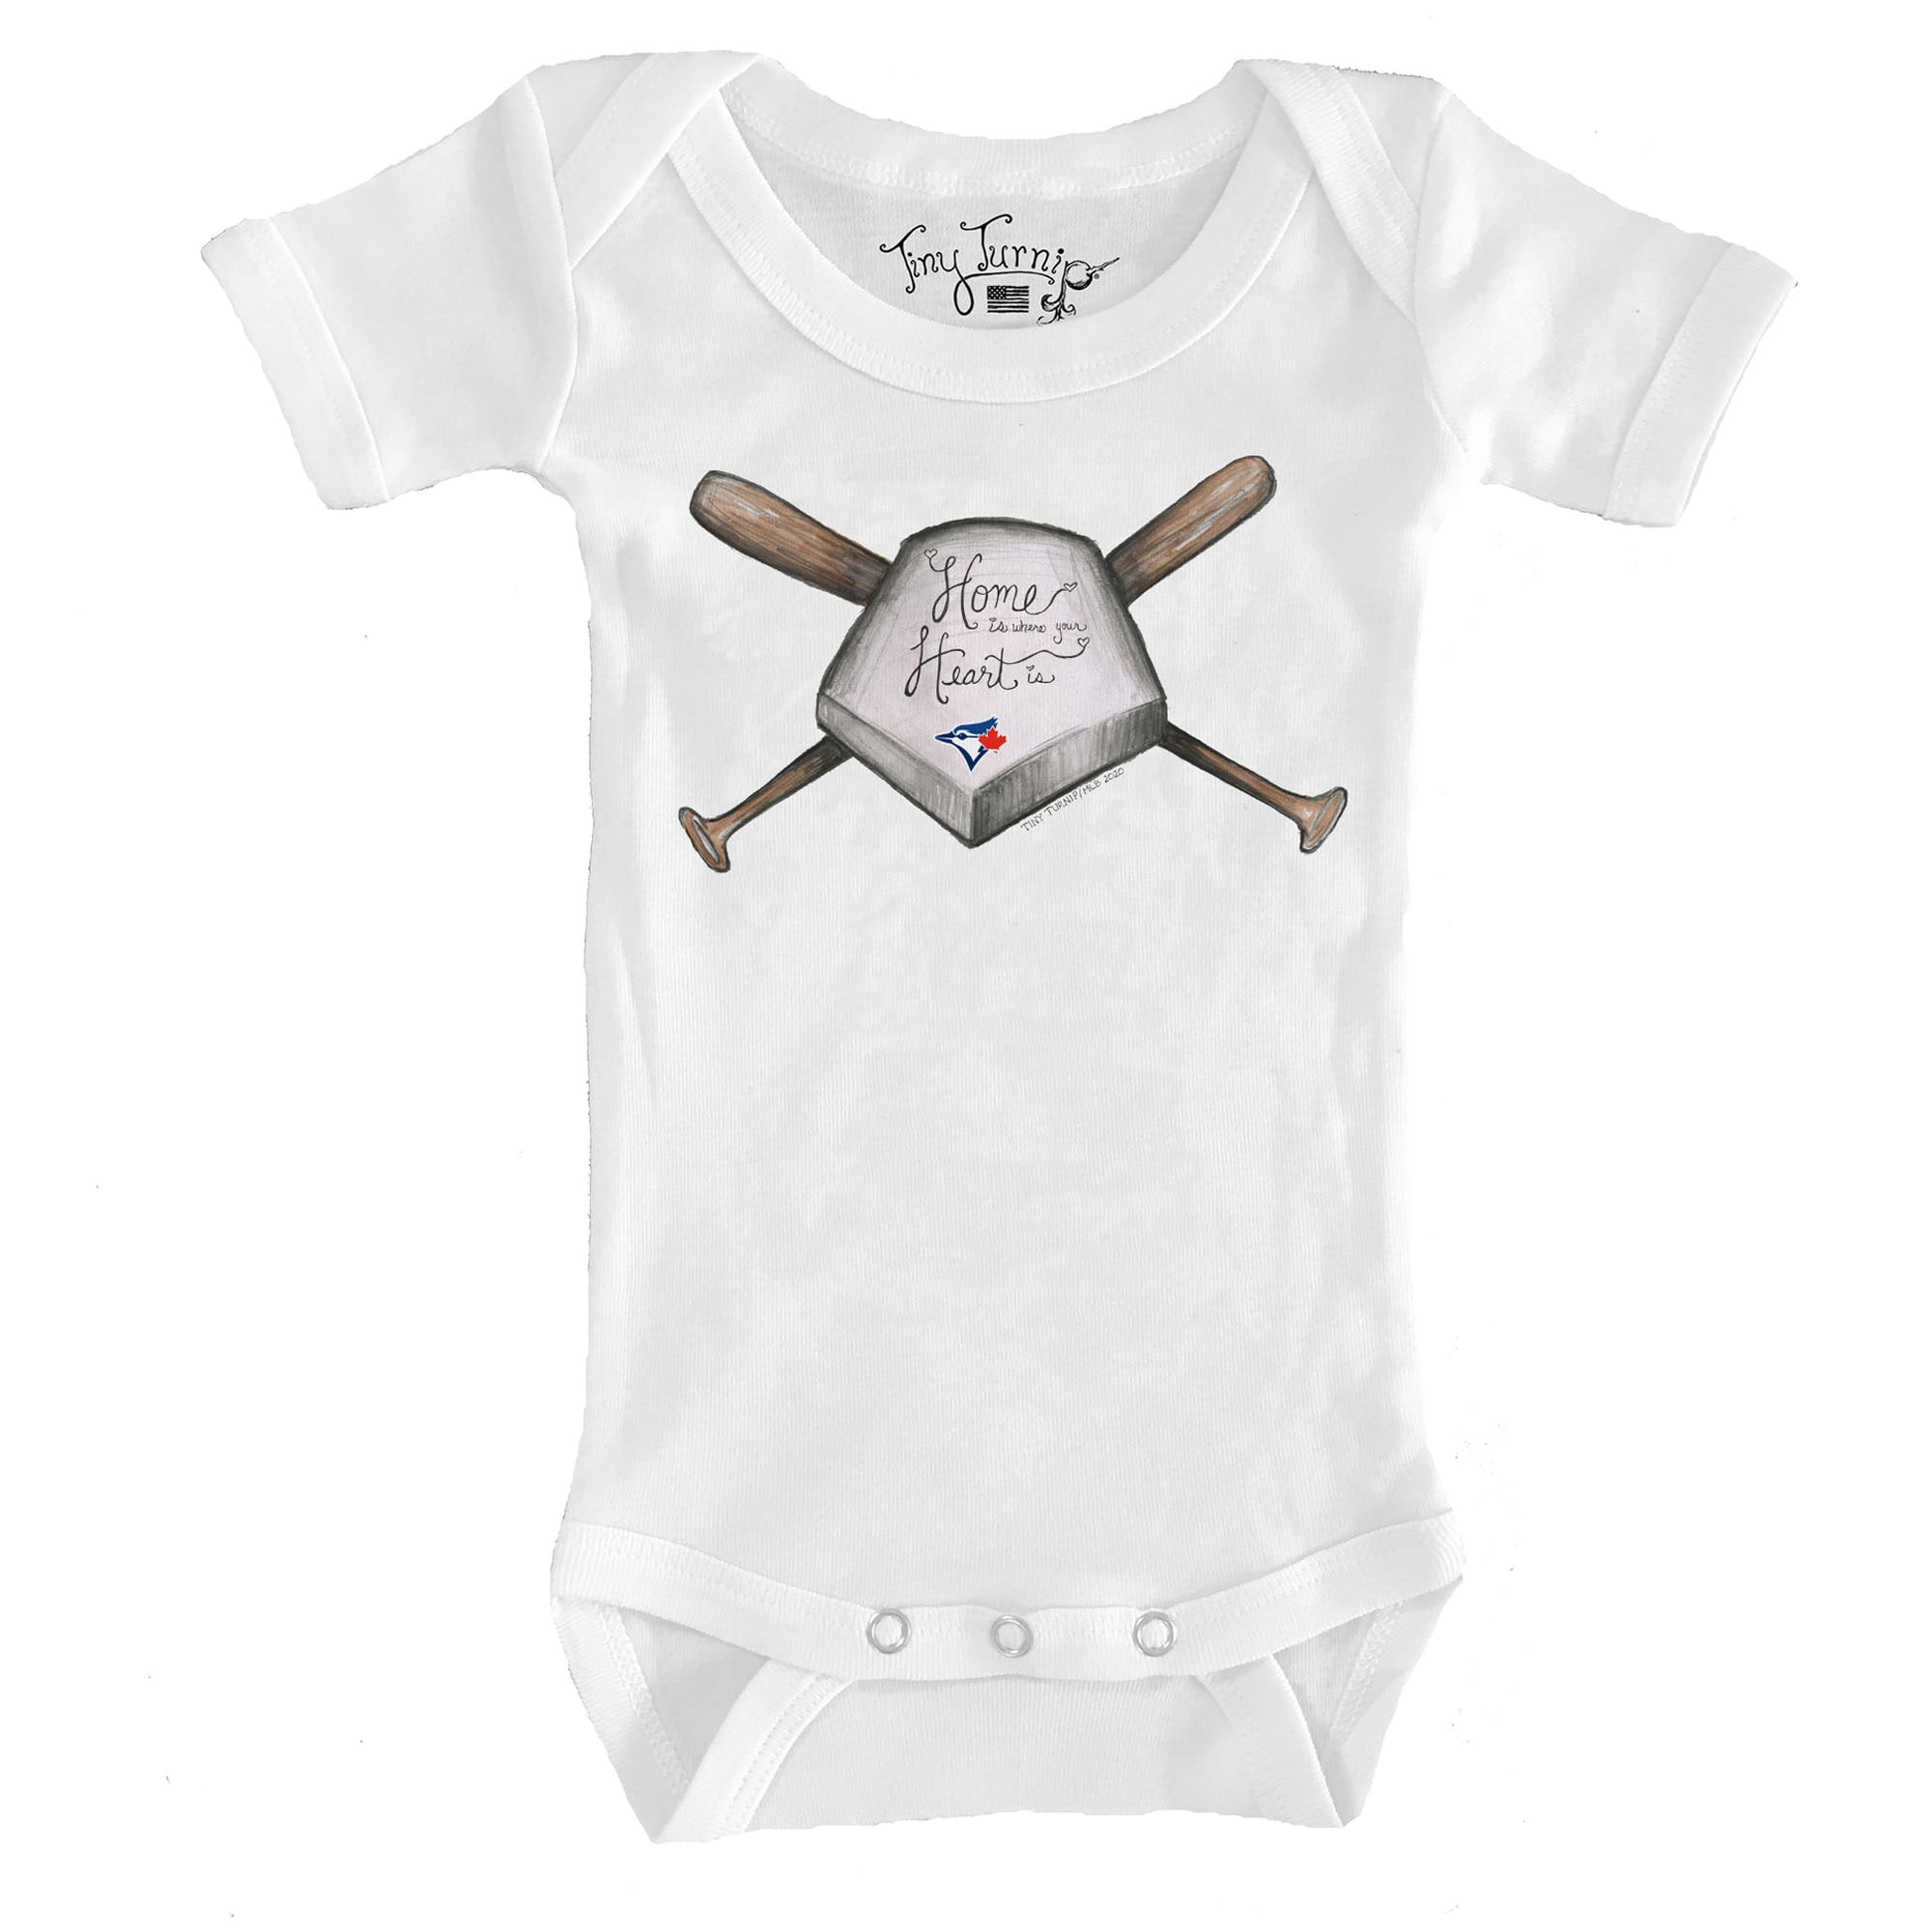 Toronto Blue Jays Tiny Turnip Infant Home Is Where Your Heart Is Bodysuit - White